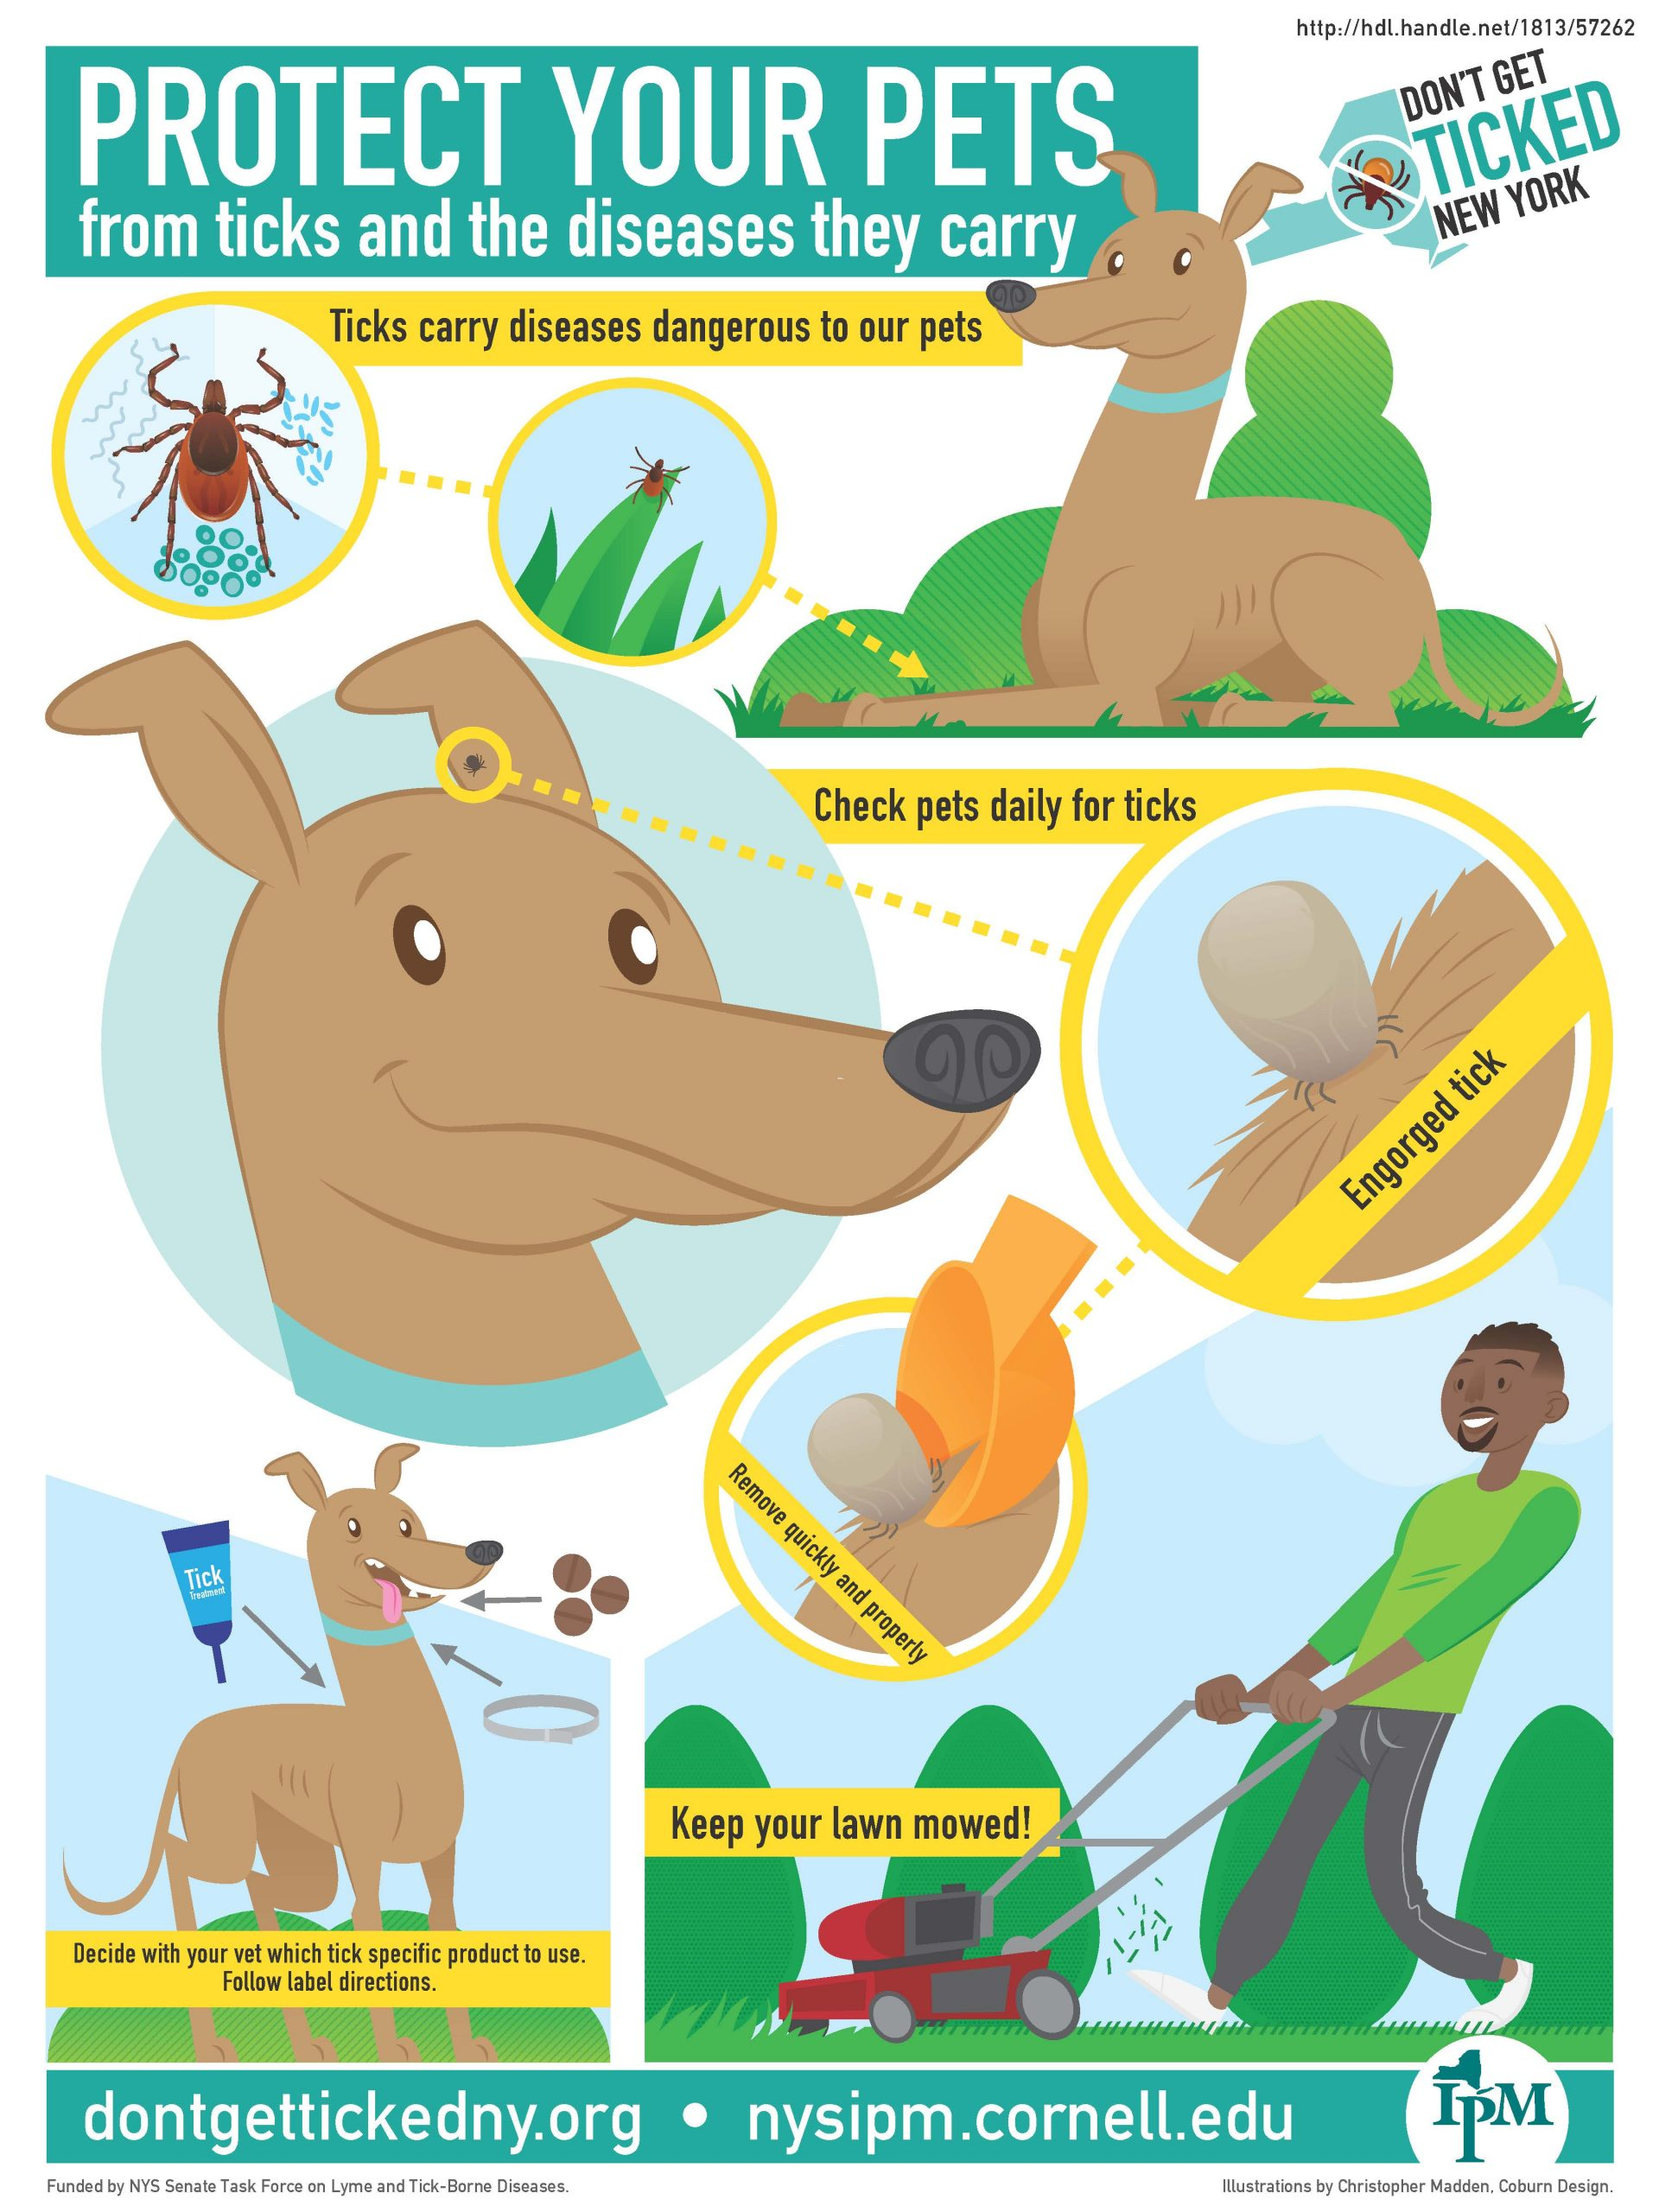 Infographic describing how to protect pets from ticks